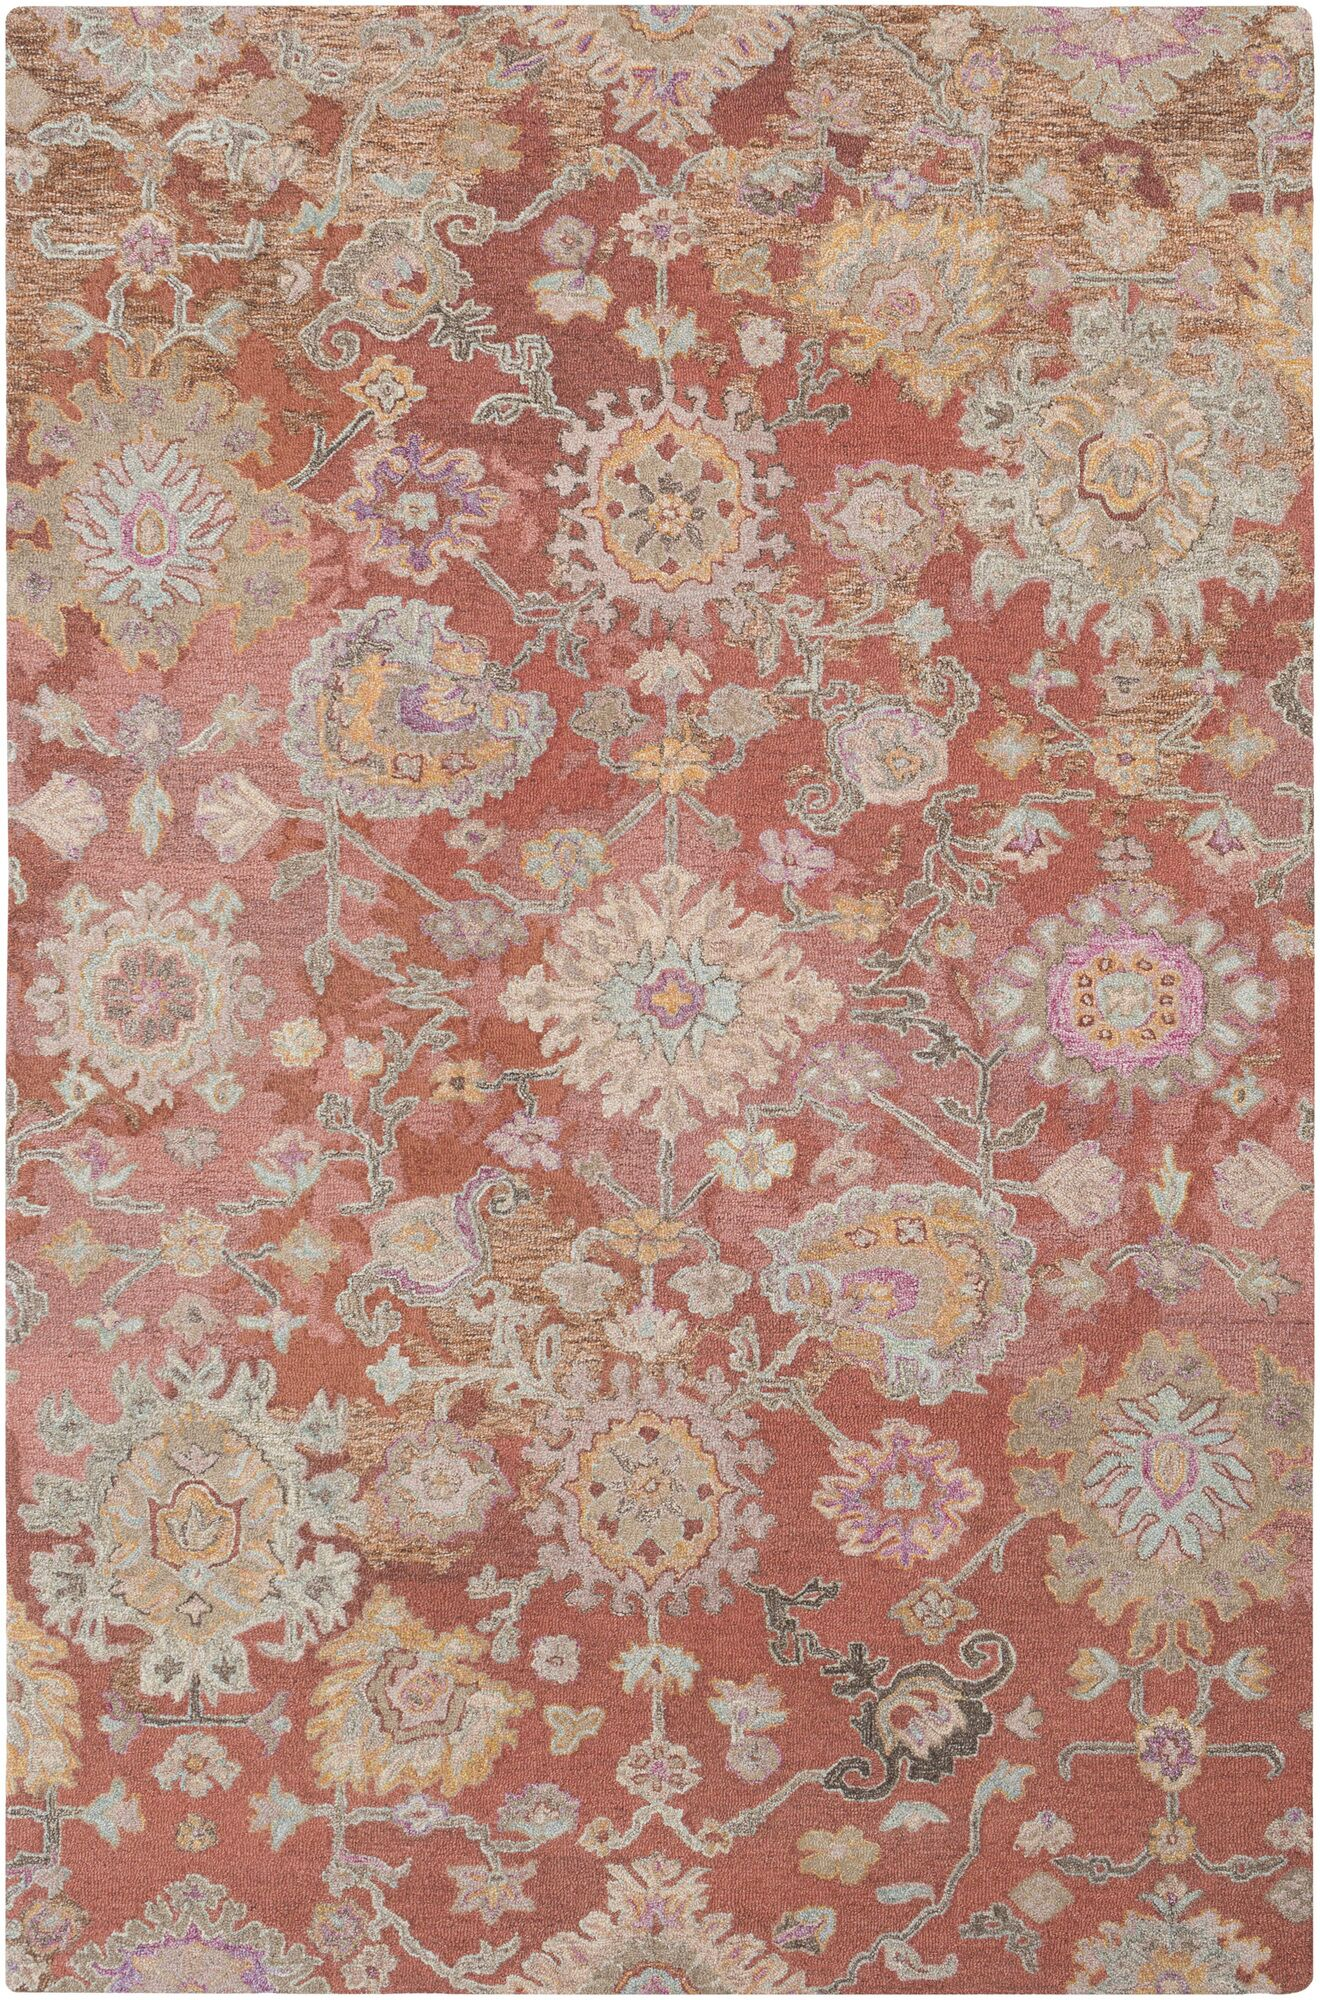 Kendall Green Vintage Floral Hand Hooked Wool Camel/Tan Area Rug Rug Size: Rectangle 5' x 7'6